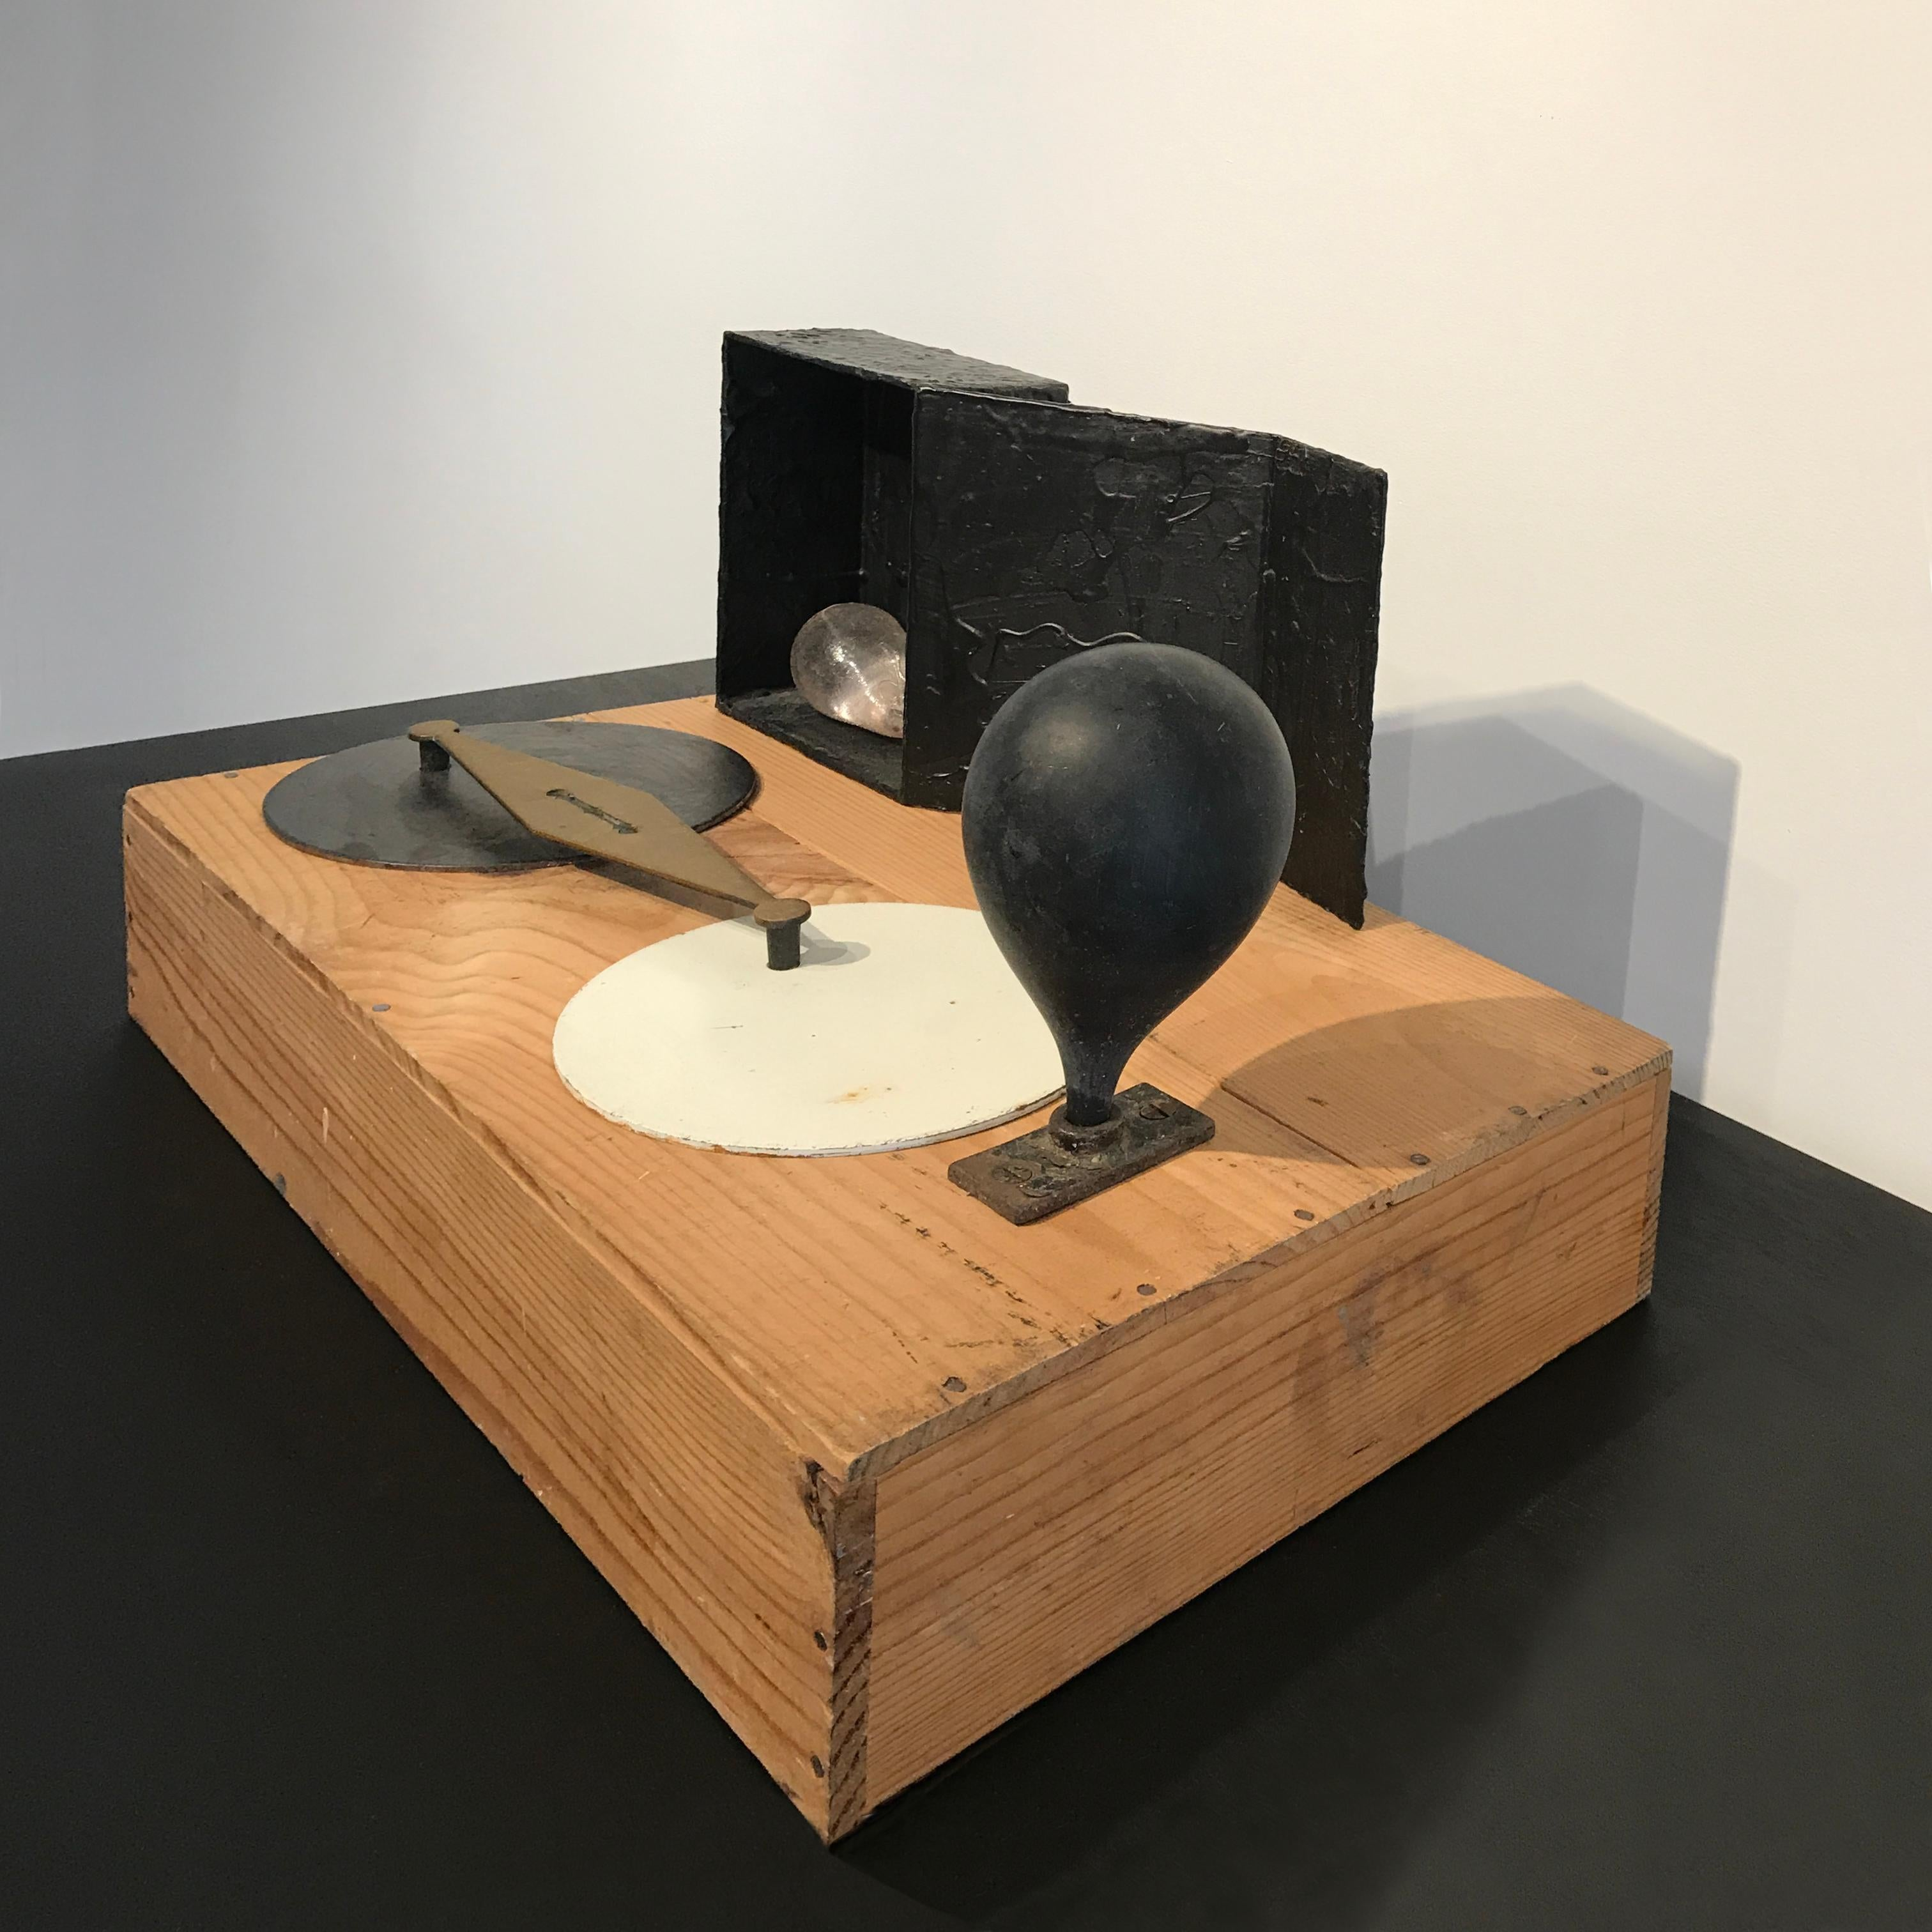 Sculpture, abstract record player: 'Kristallo'